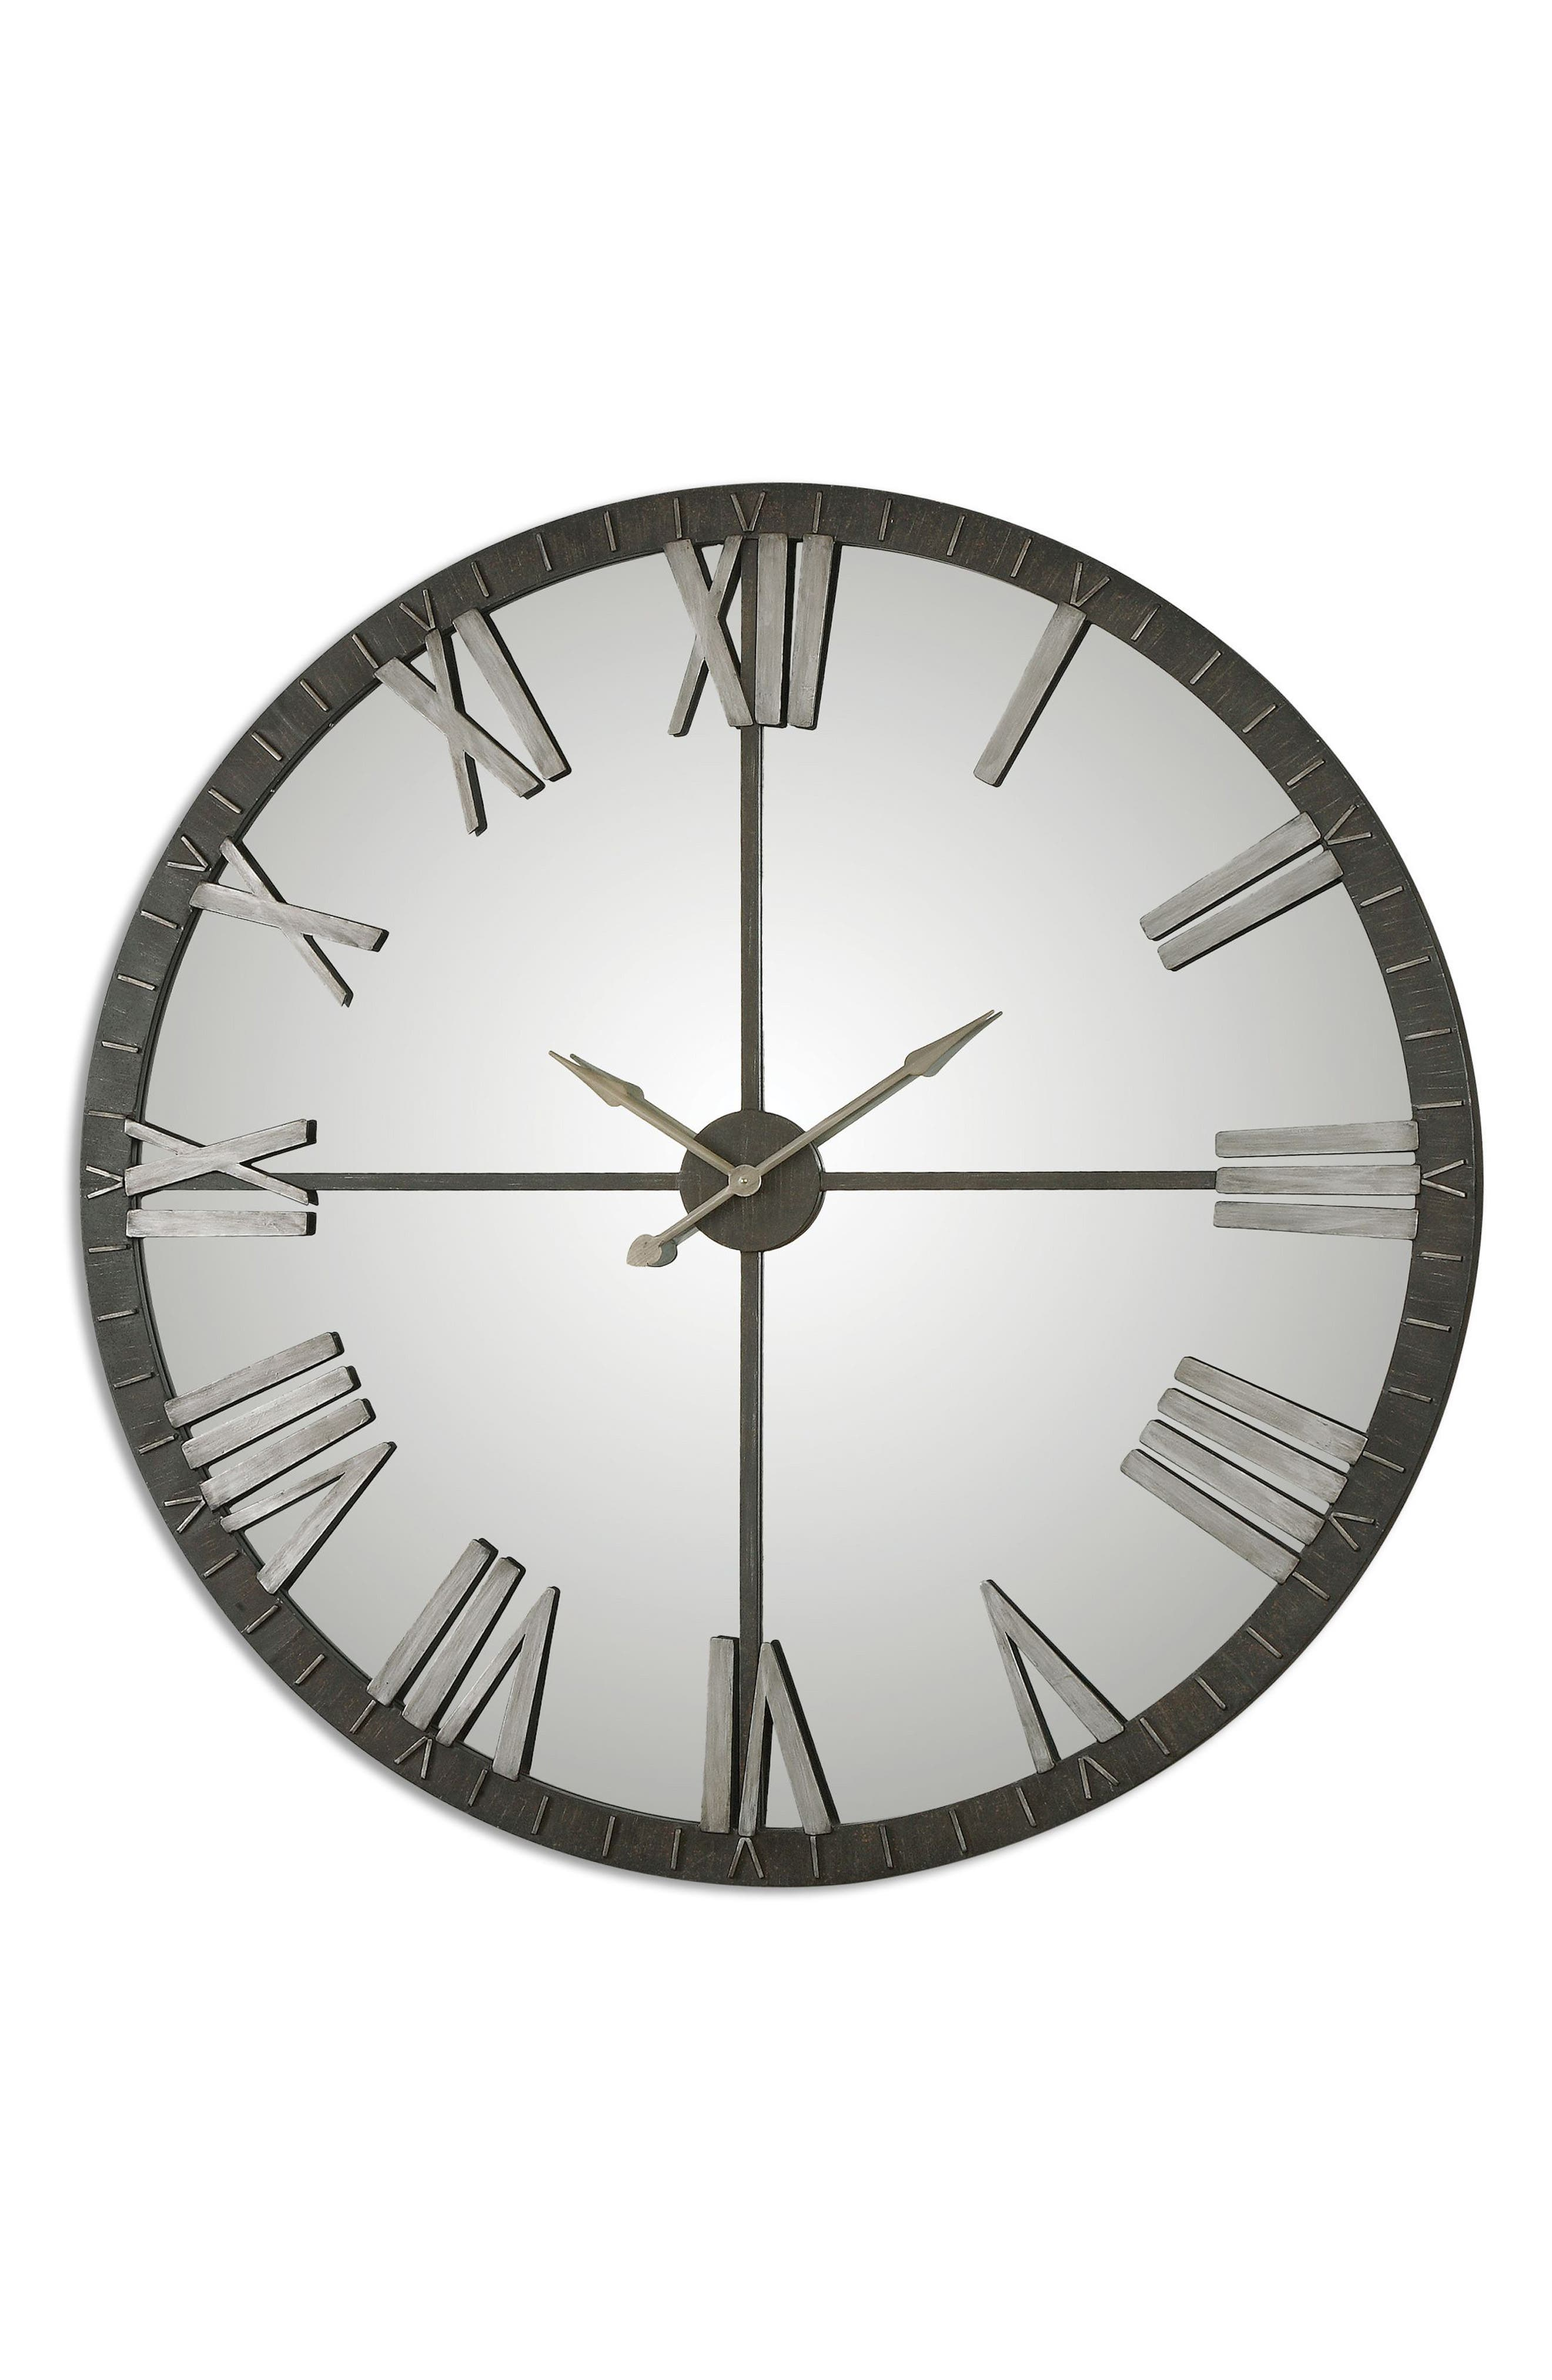 Main Image - Uttermost Amelie Wall Clock